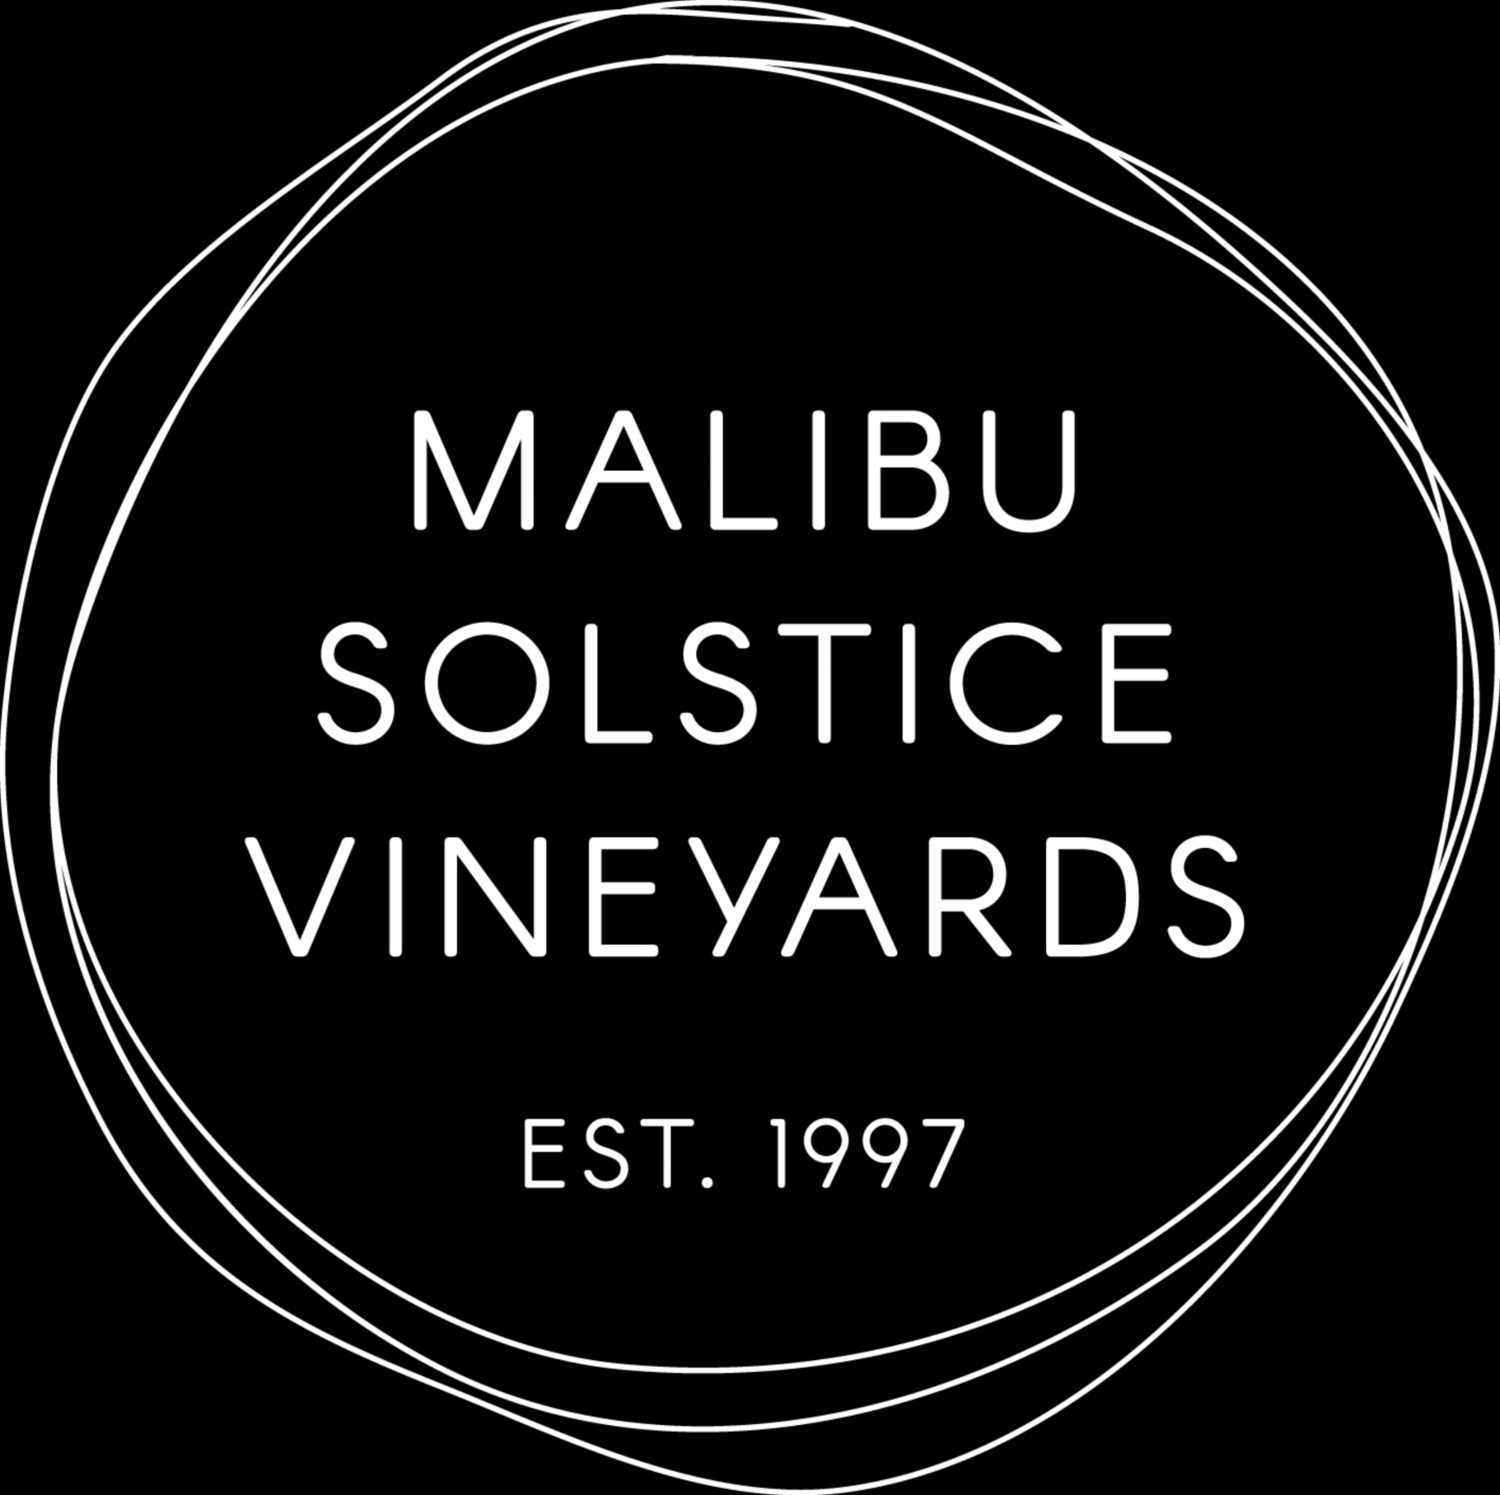 Malibu Solstice Vineyards